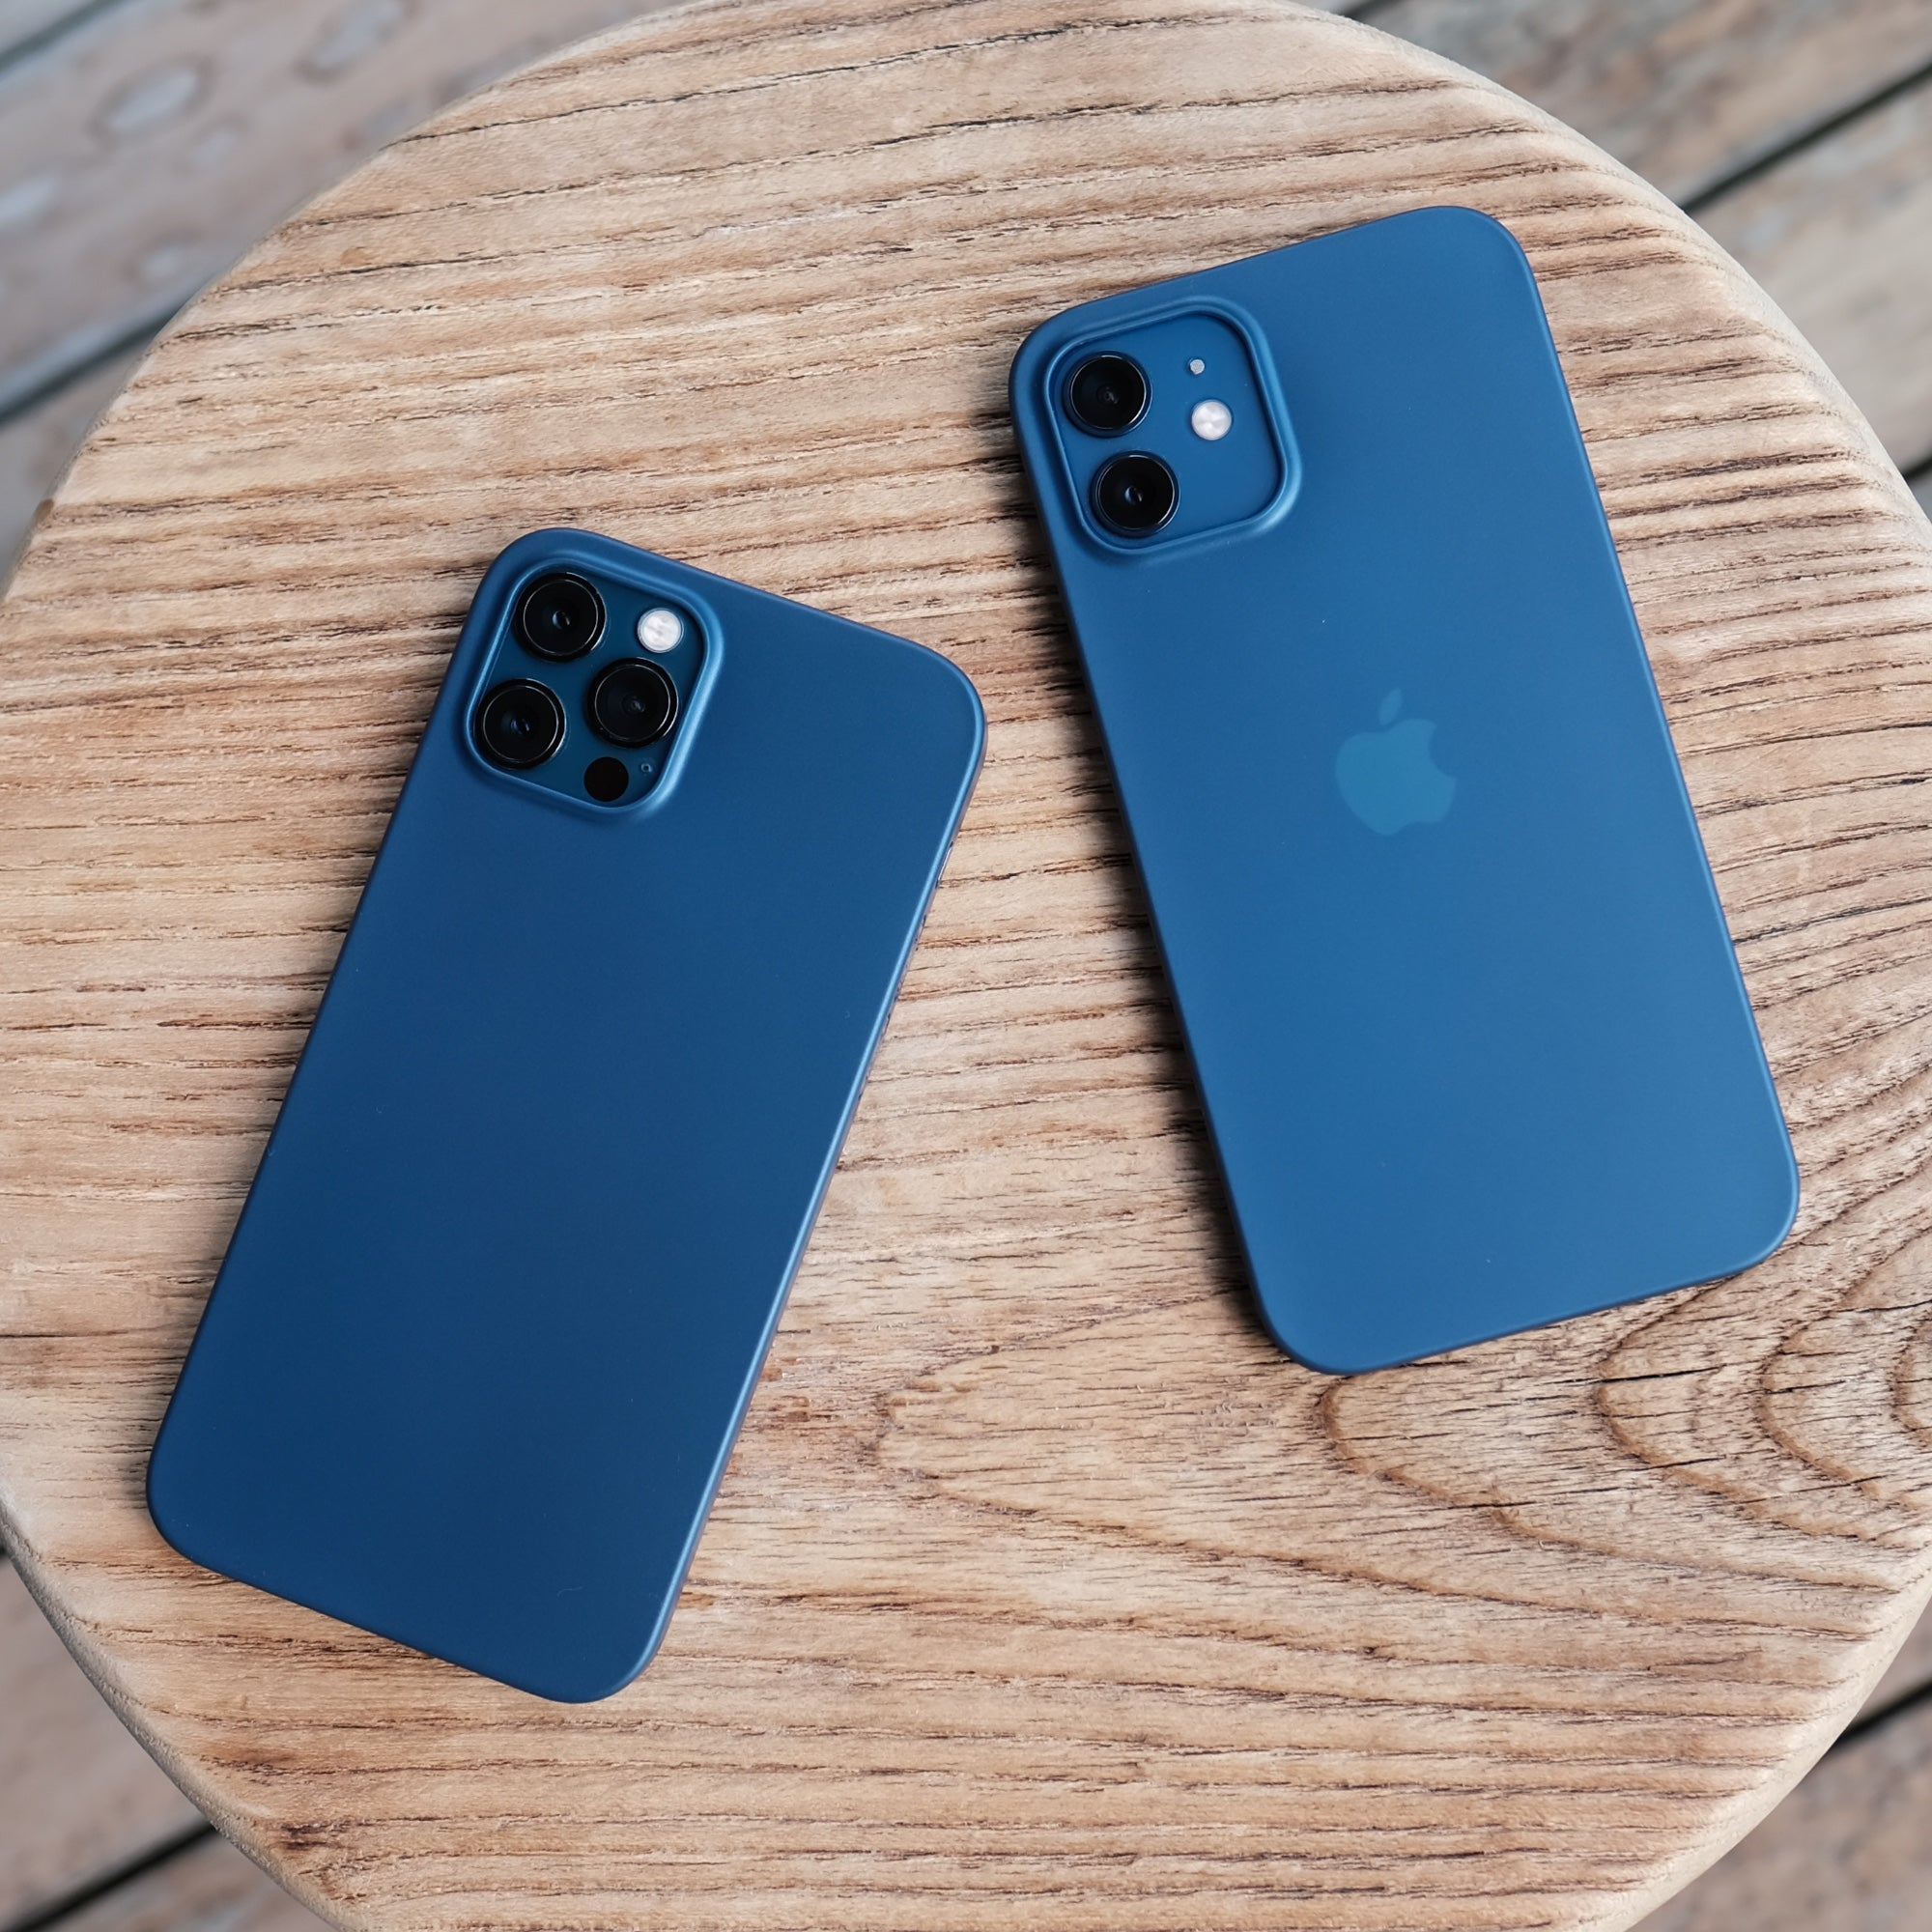 Bare Naked - The Thinnest Case for iPhone 12 and iPhone 12 Pro